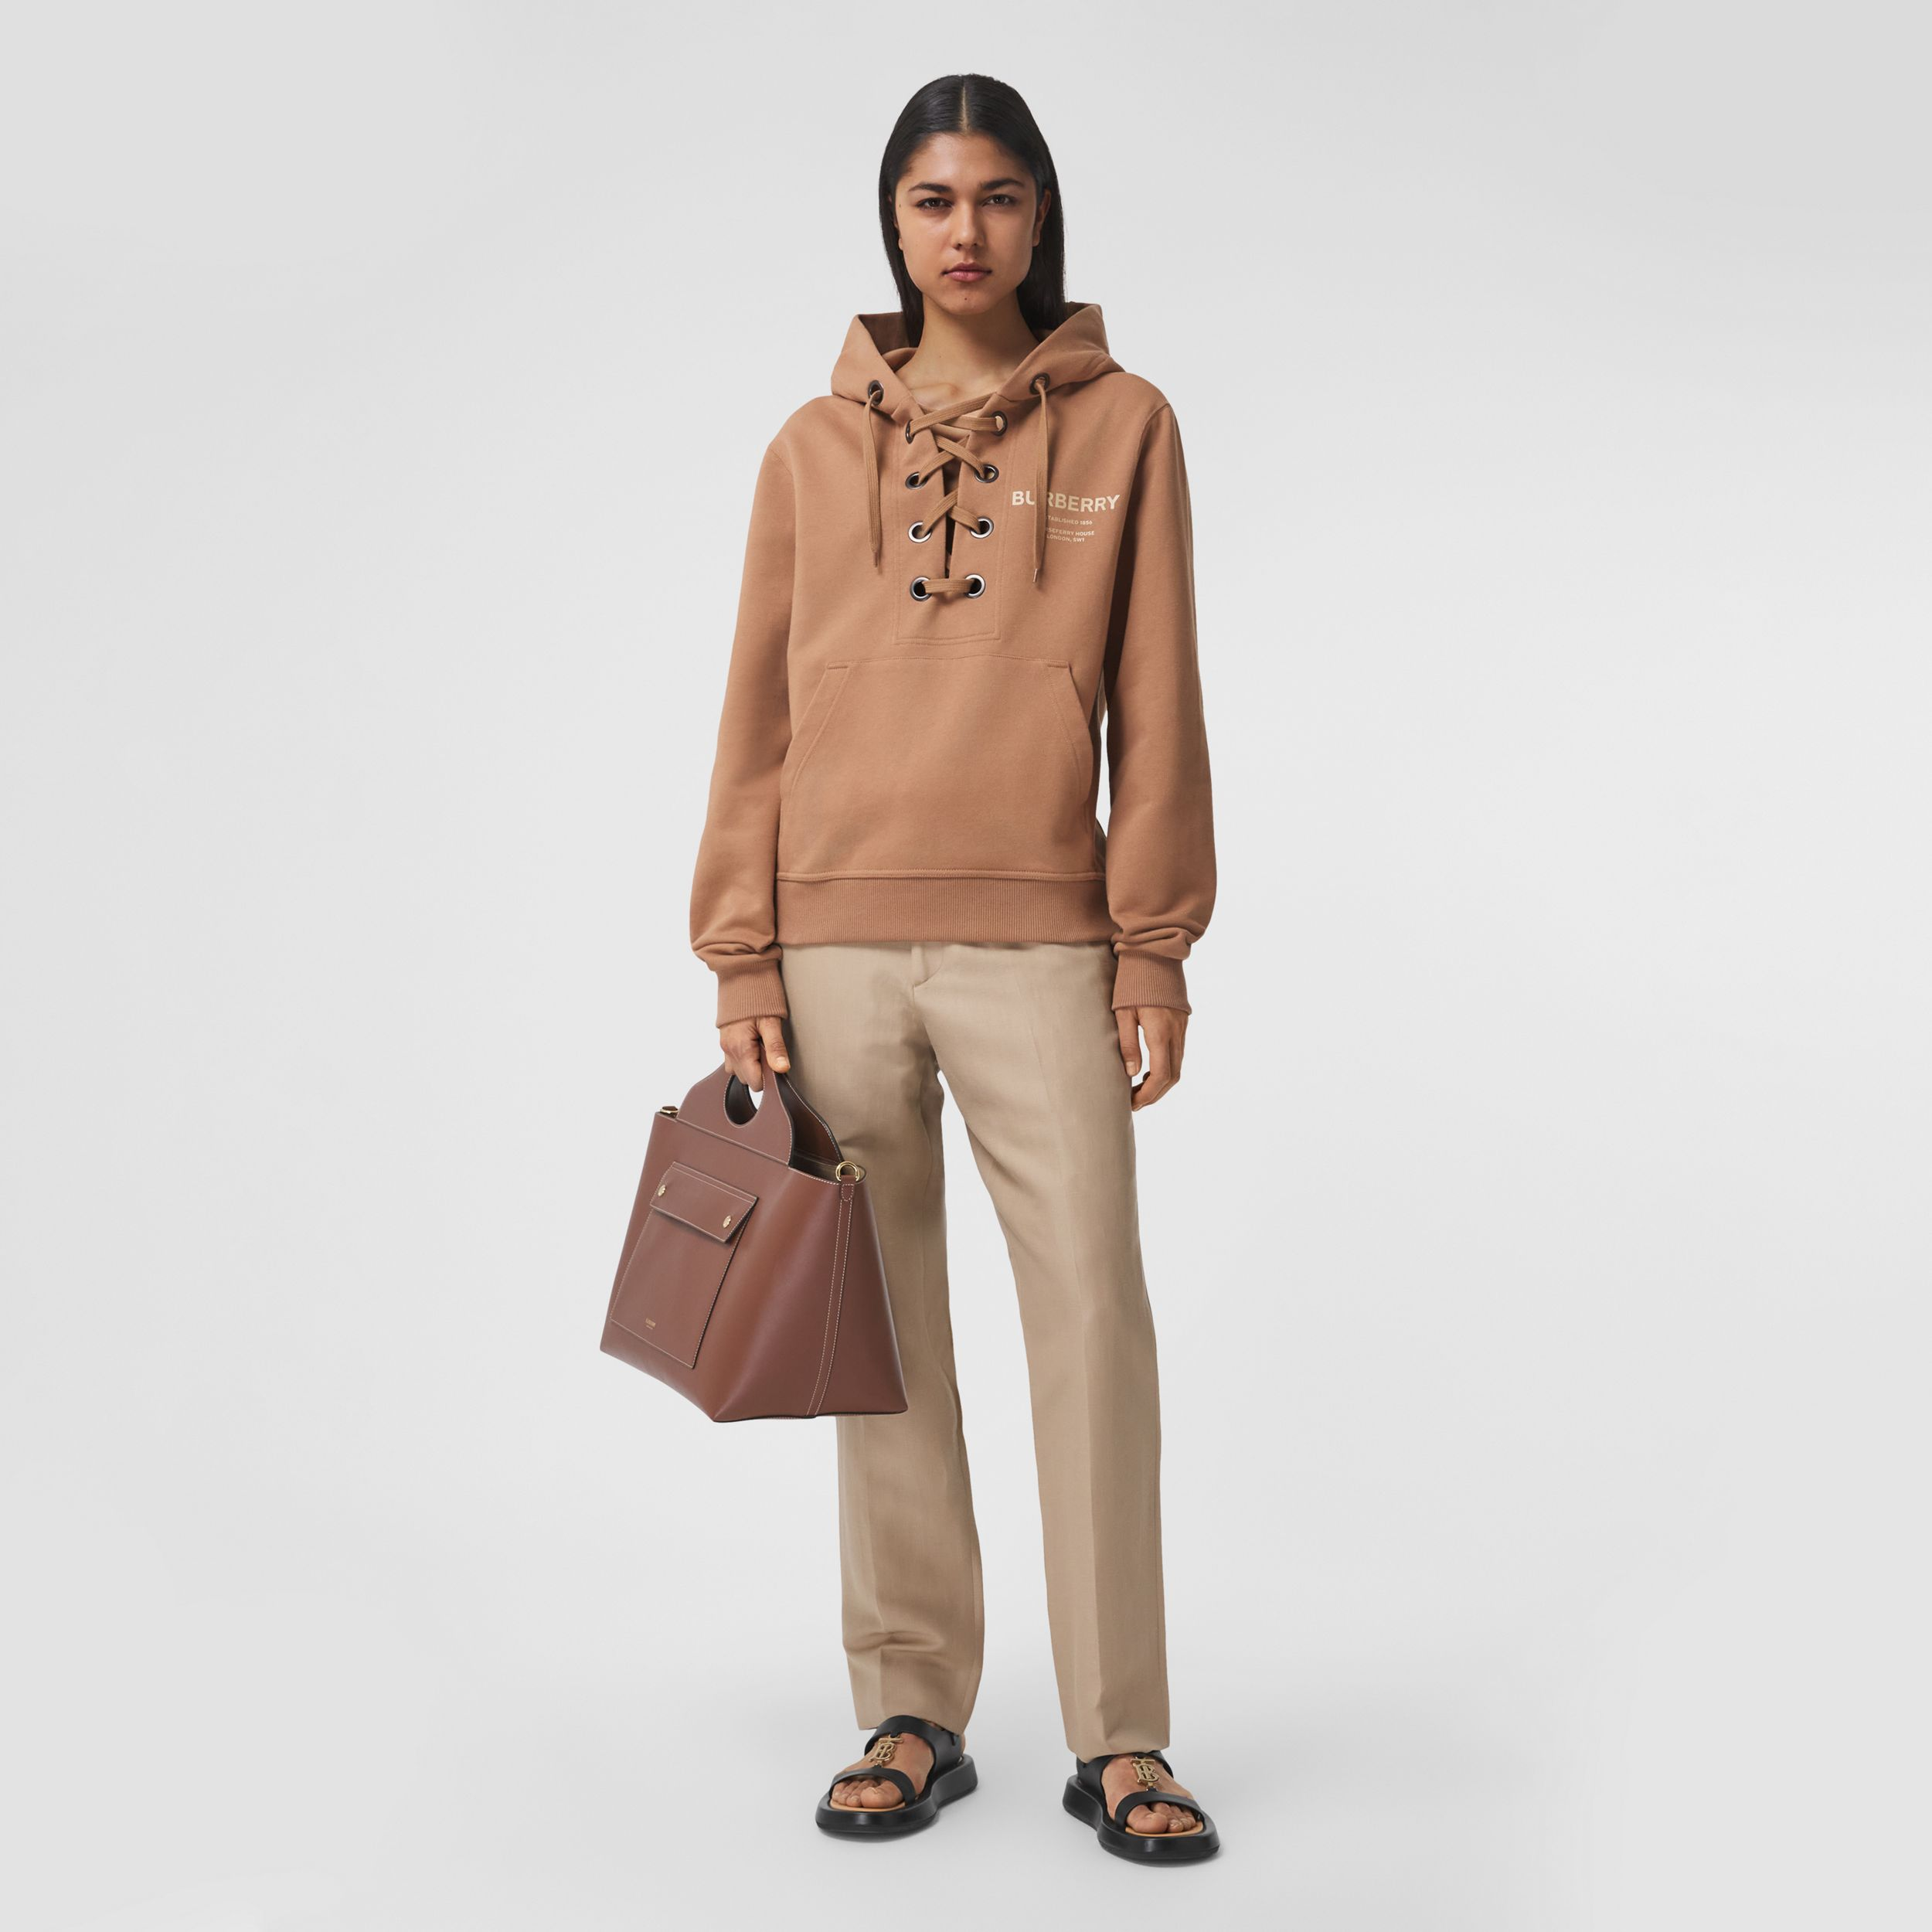 Lace-up Horseferry Print Cotton Oversized Hoodie in Camel - Women | Burberry - 1